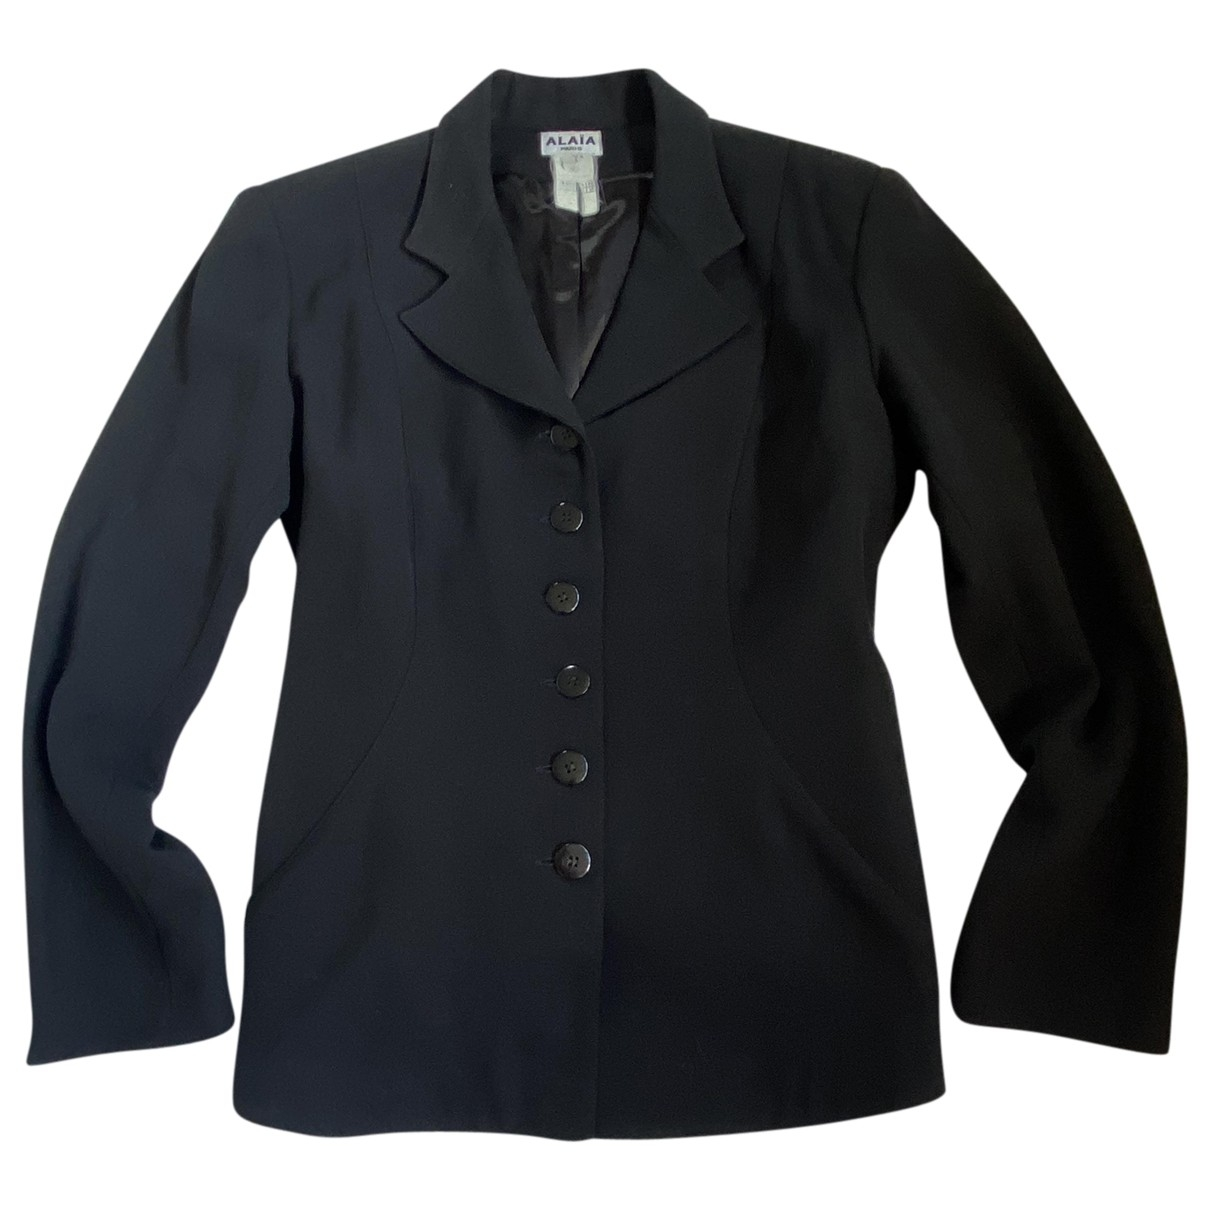 Alaïa \N Black Wool jacket for Women 42 FR